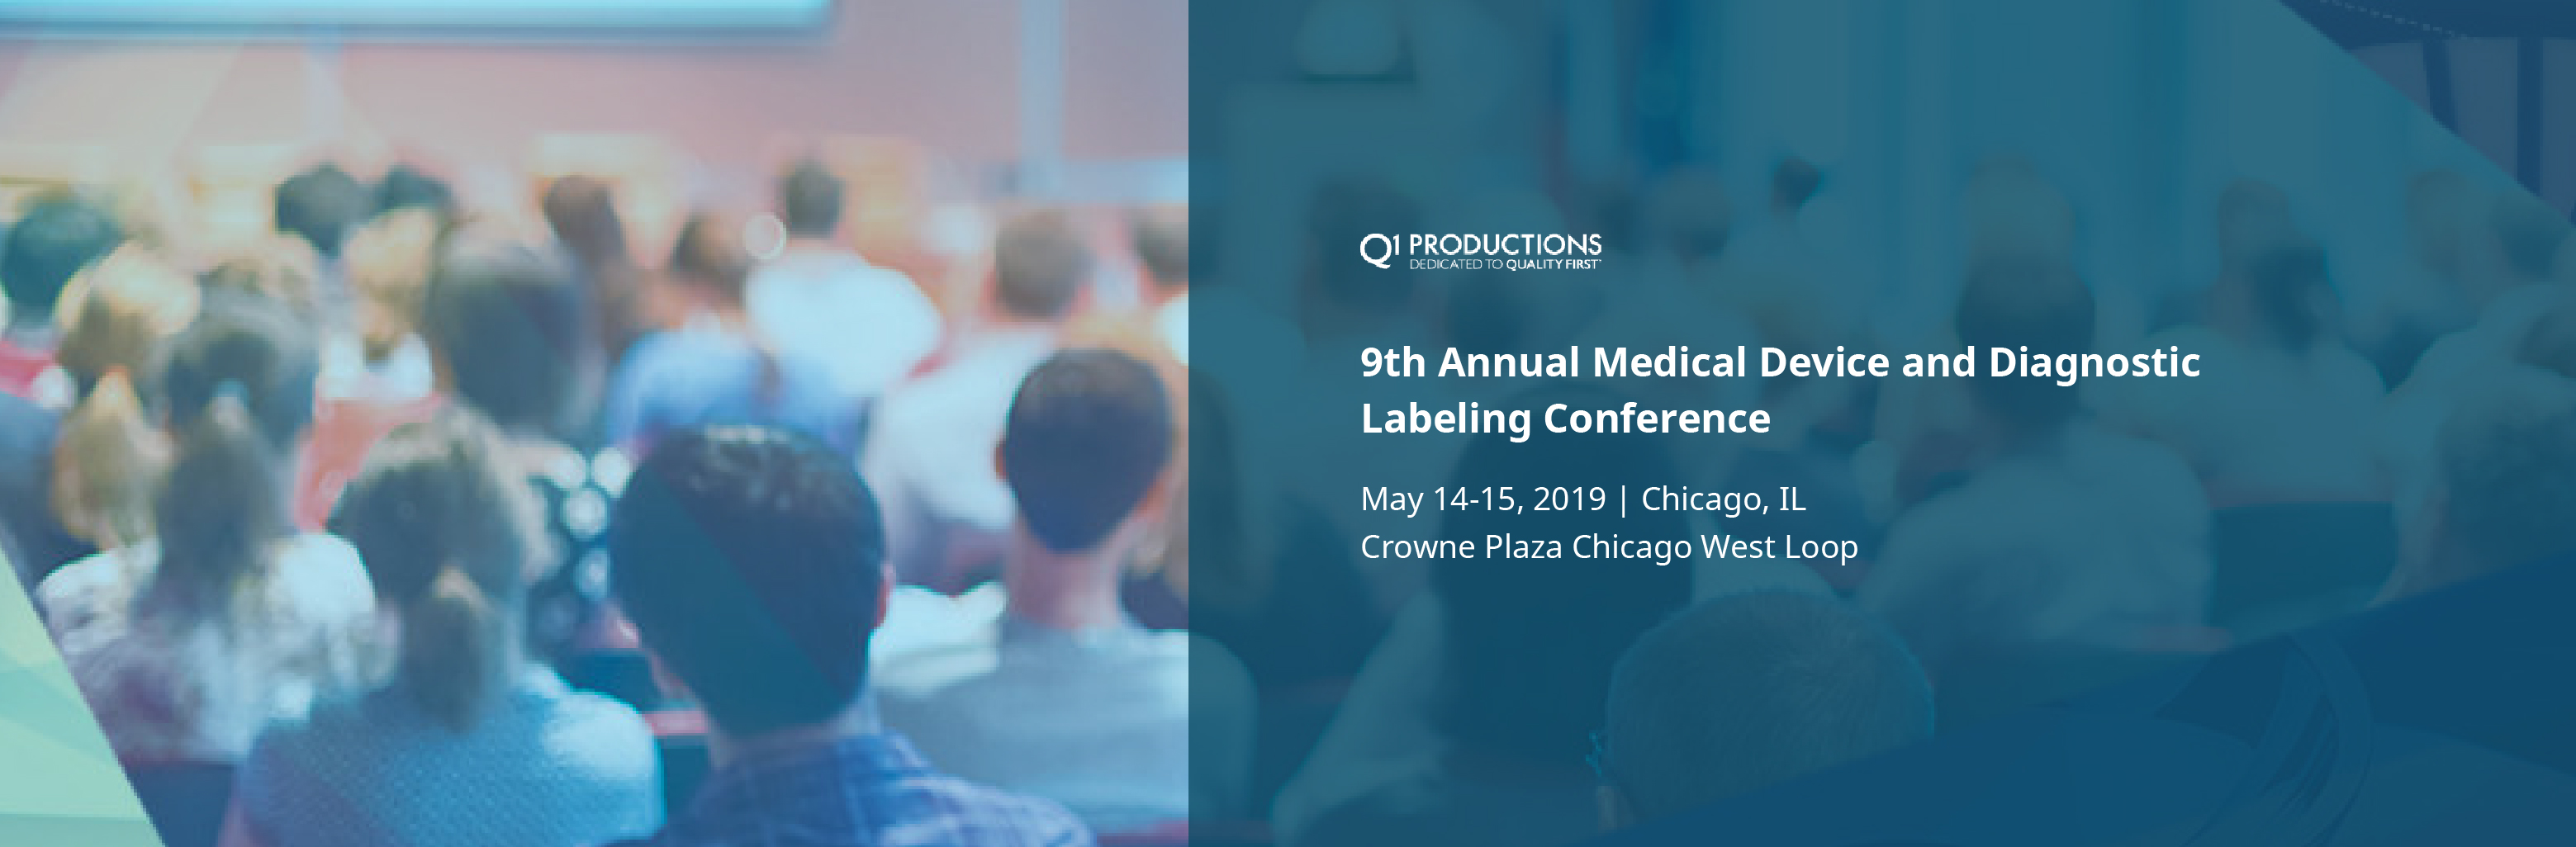 NLG at Medical Device and Diagnostic Labeling Conference